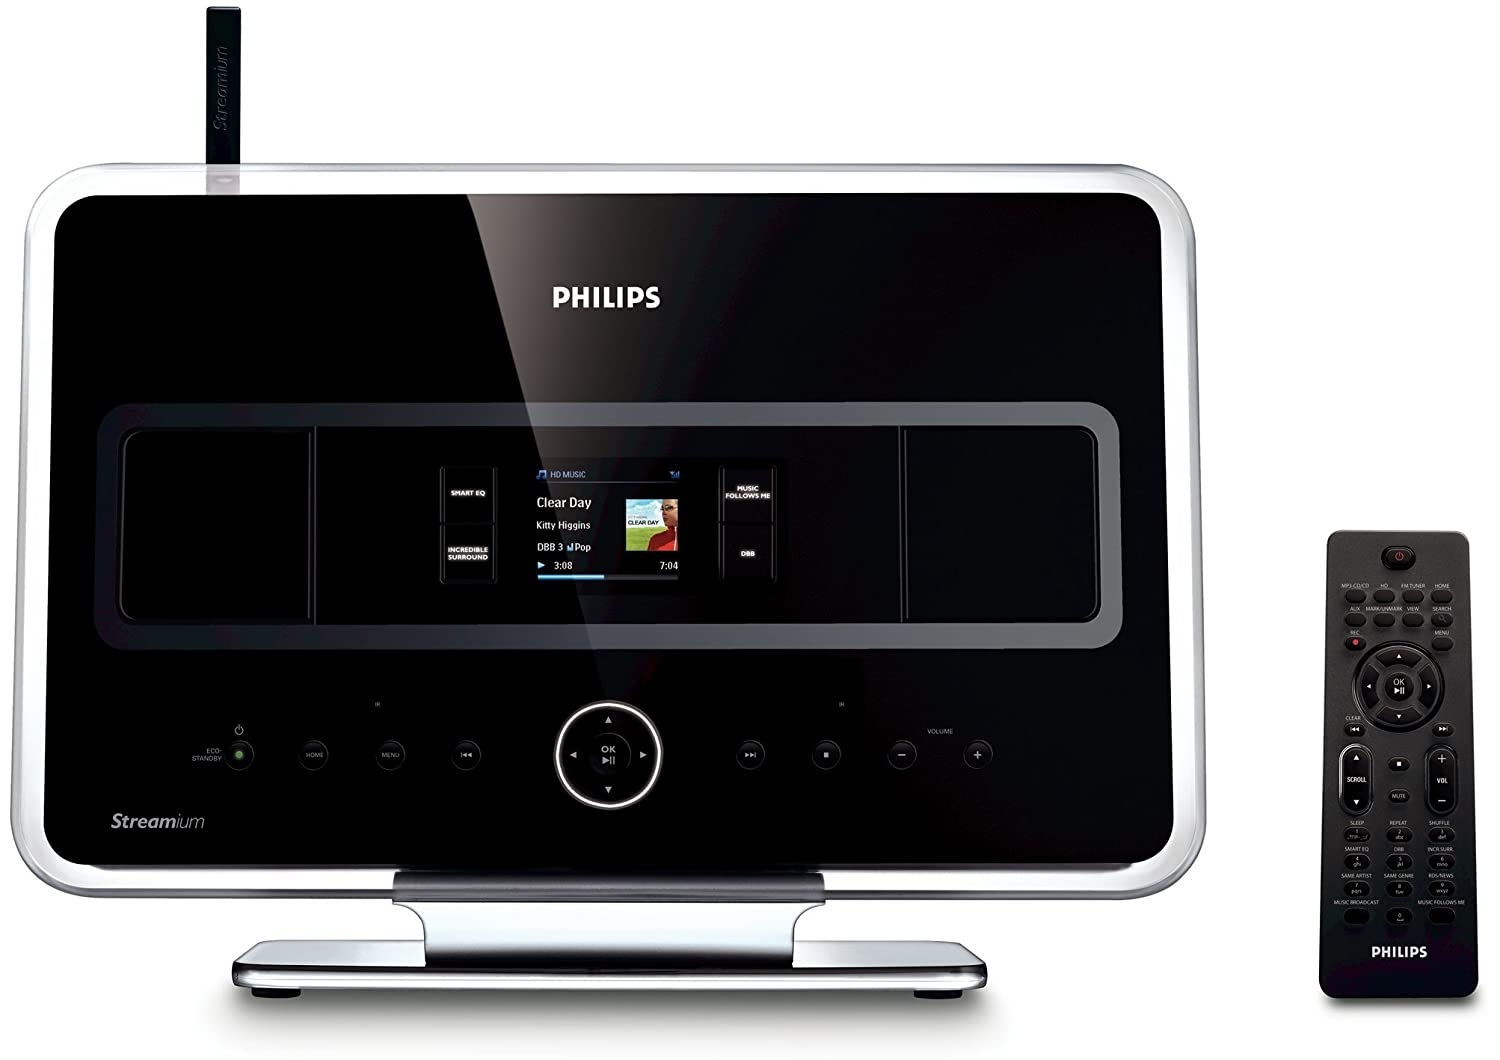 Philips WACS7500/37B Wireless Music Station Drivers for Mac Download